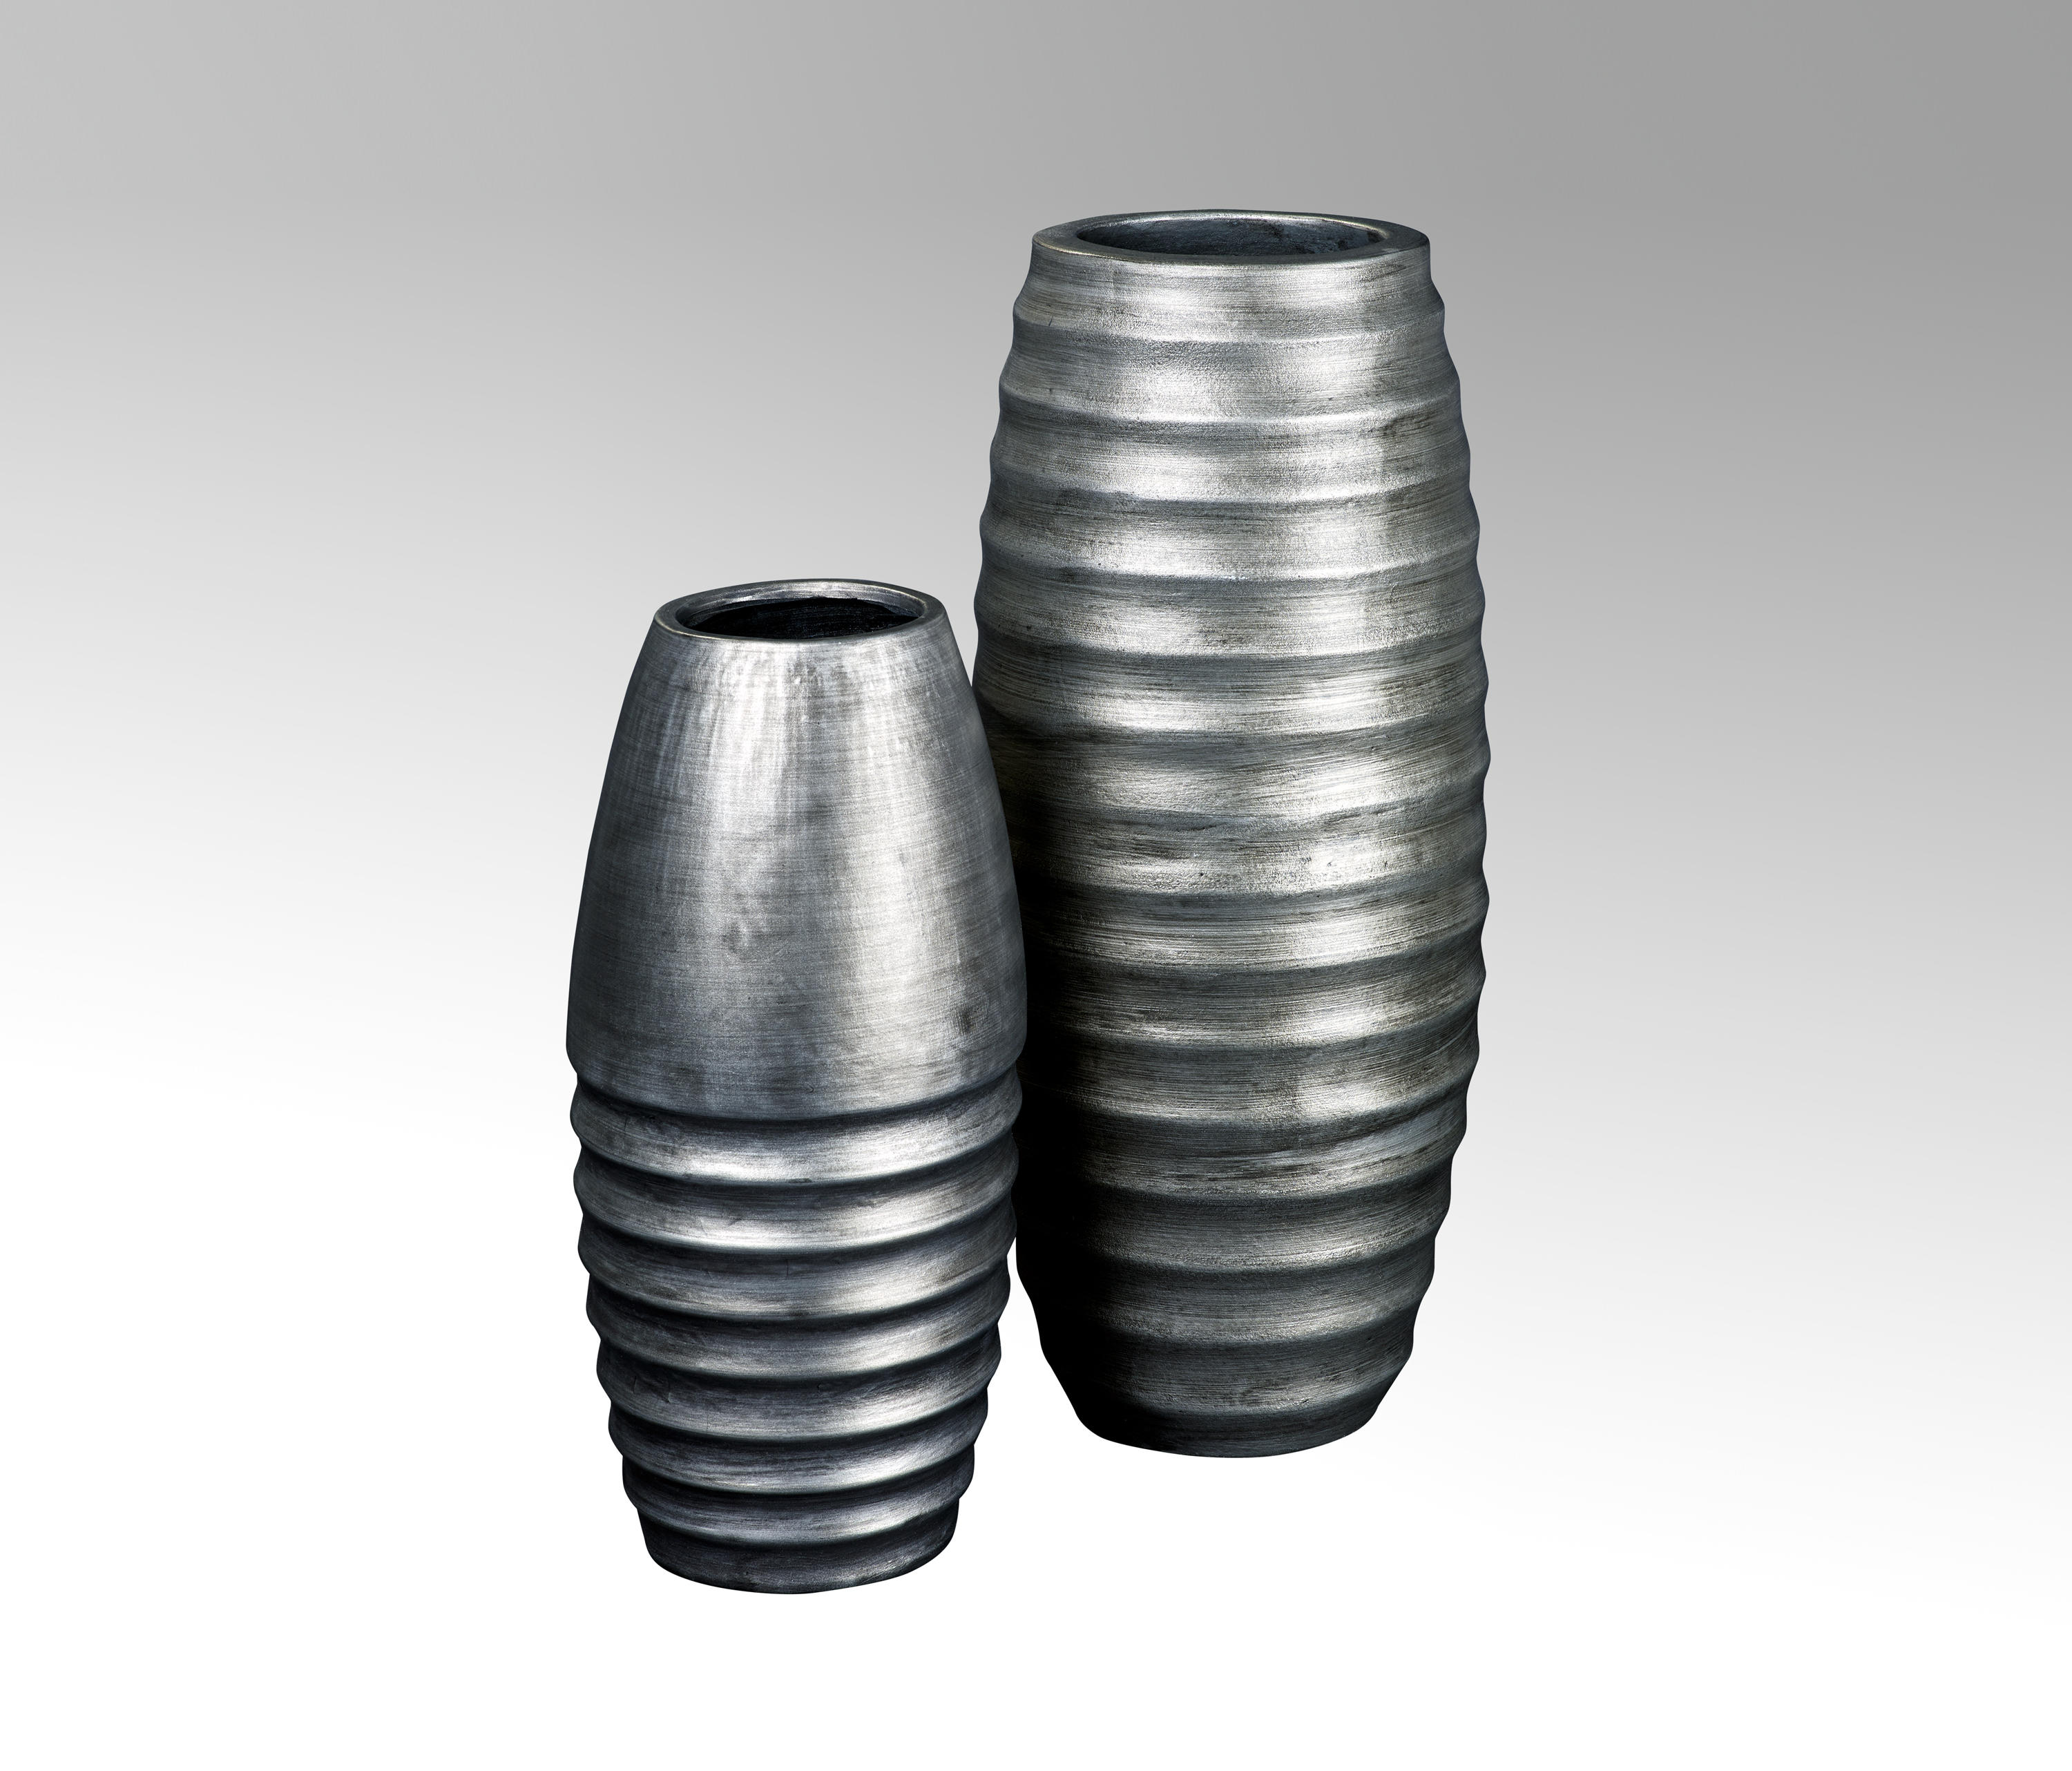 Vase Hoch Sansibar Vases From Lambert Architonic